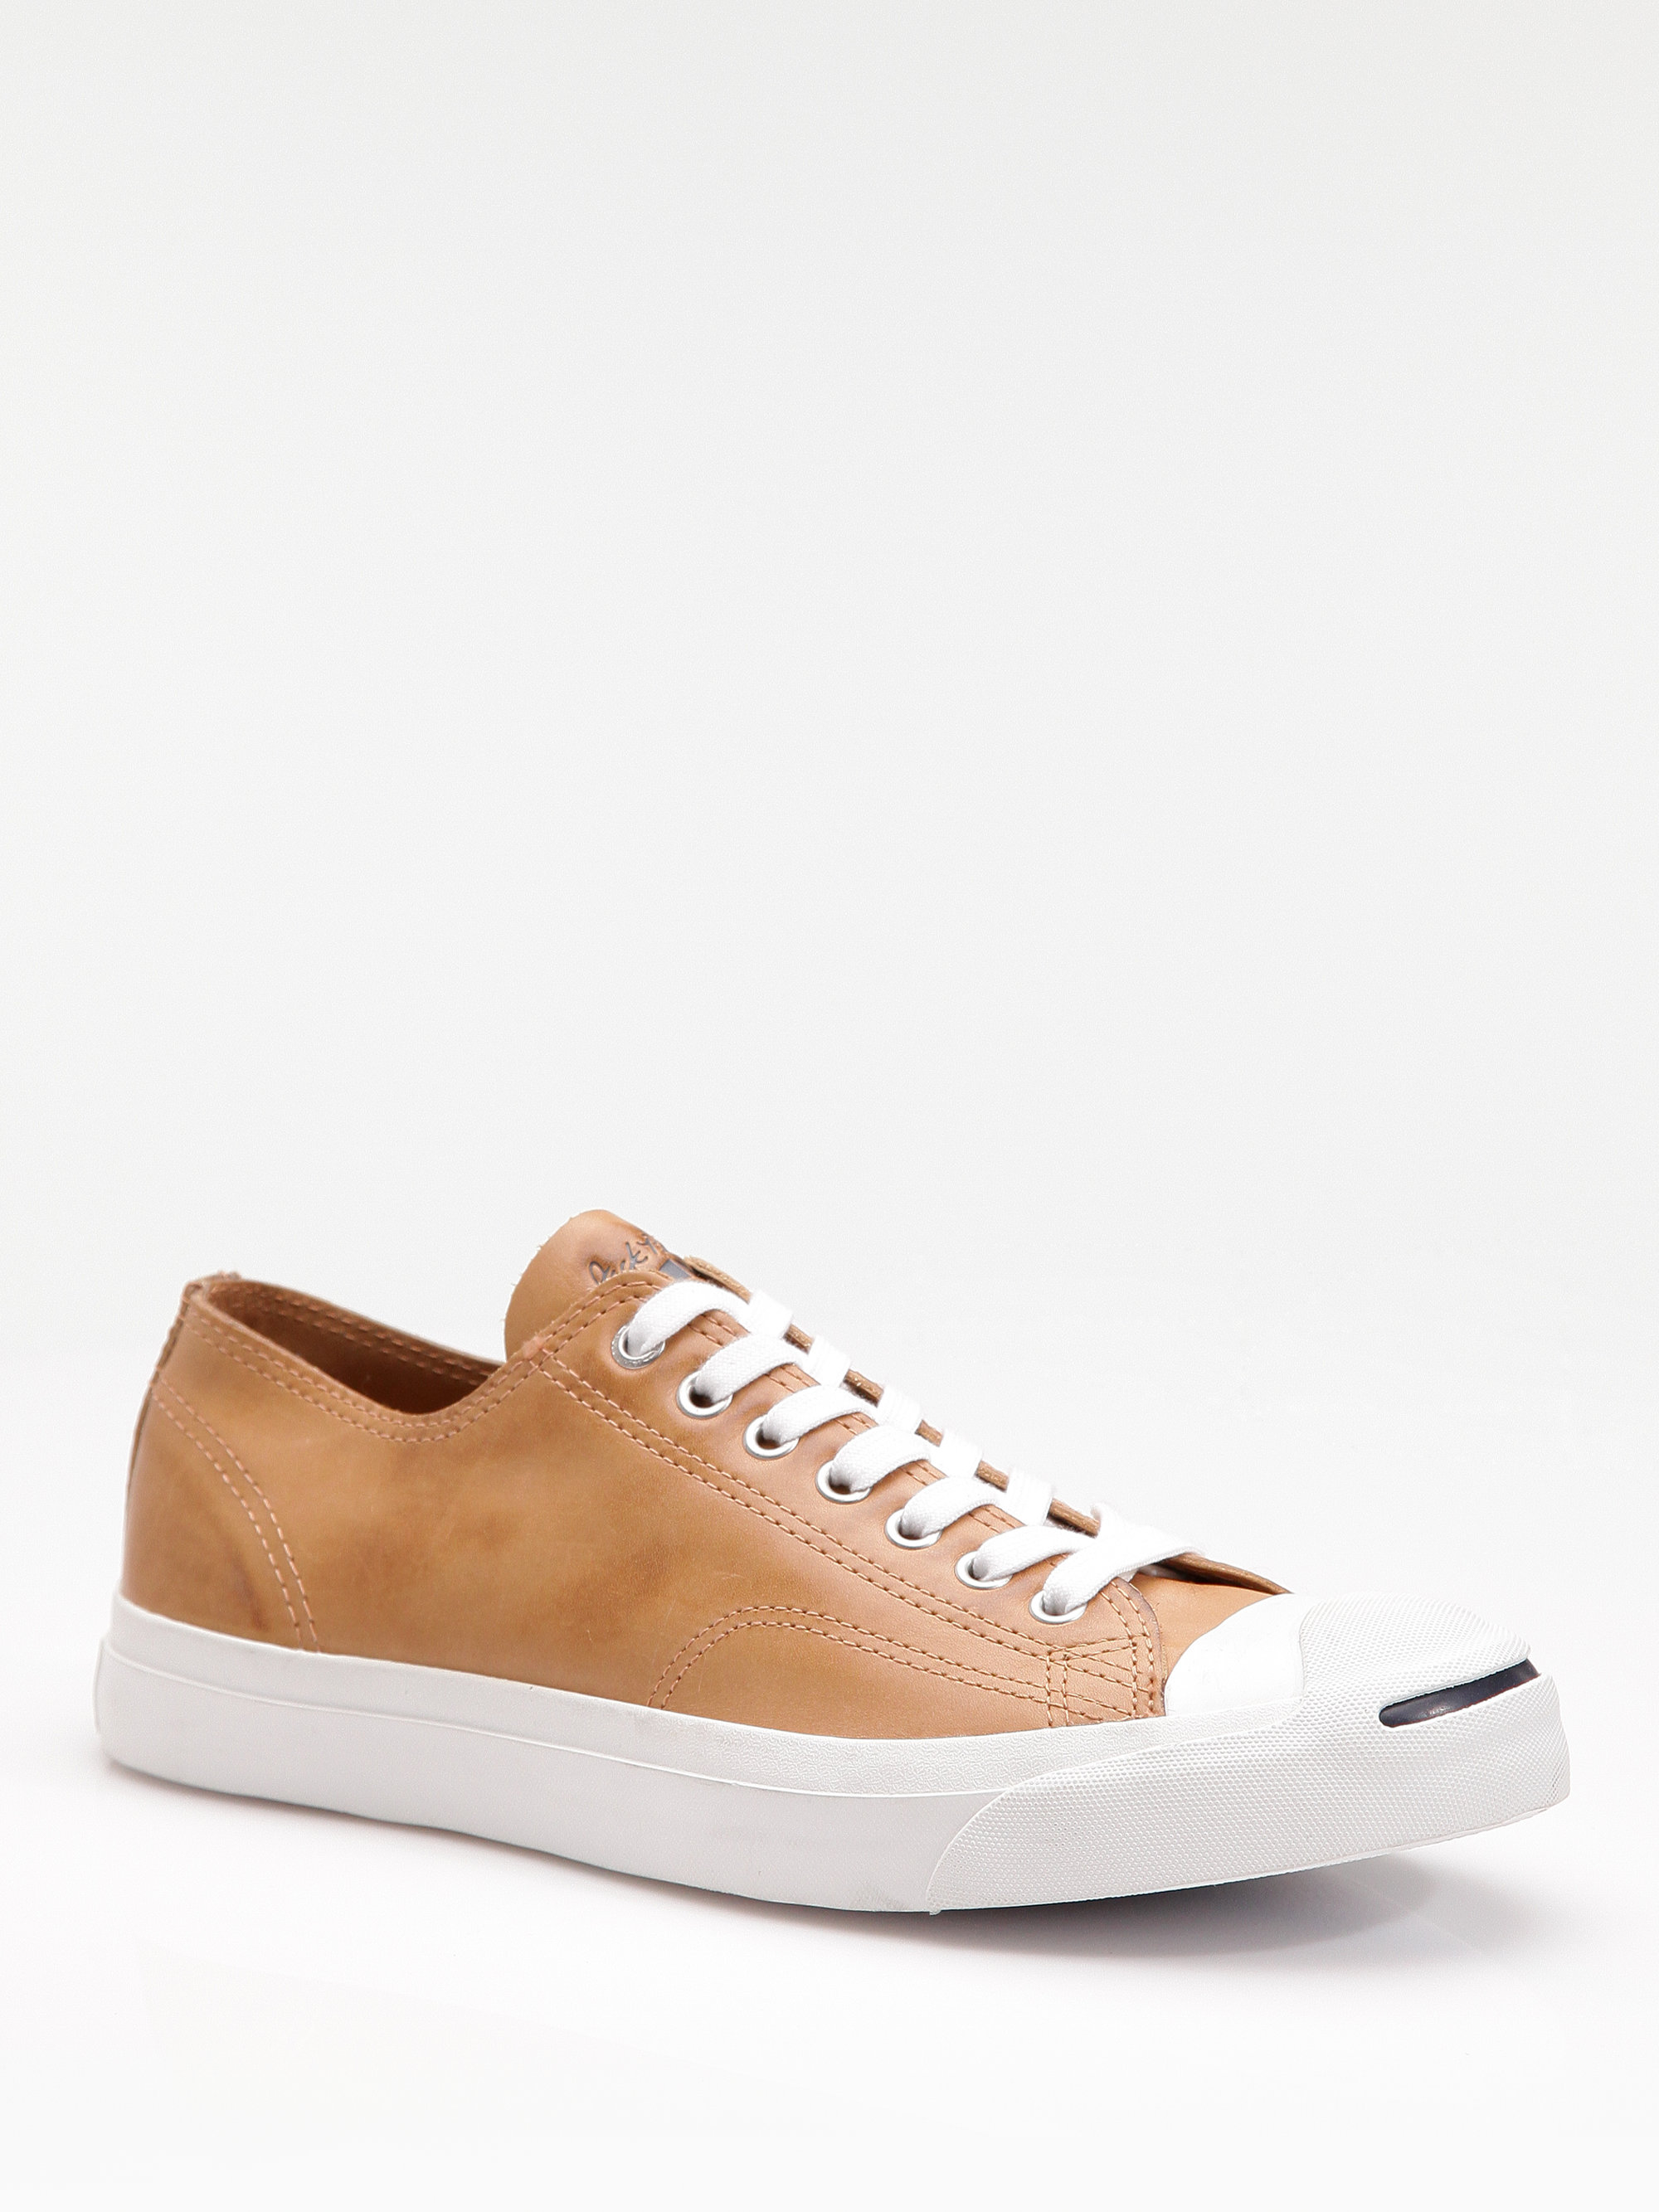 8f0e8c25c5bb ireland lyst converse jack purcell leather oxfords in brown for men 25c37  be1fa